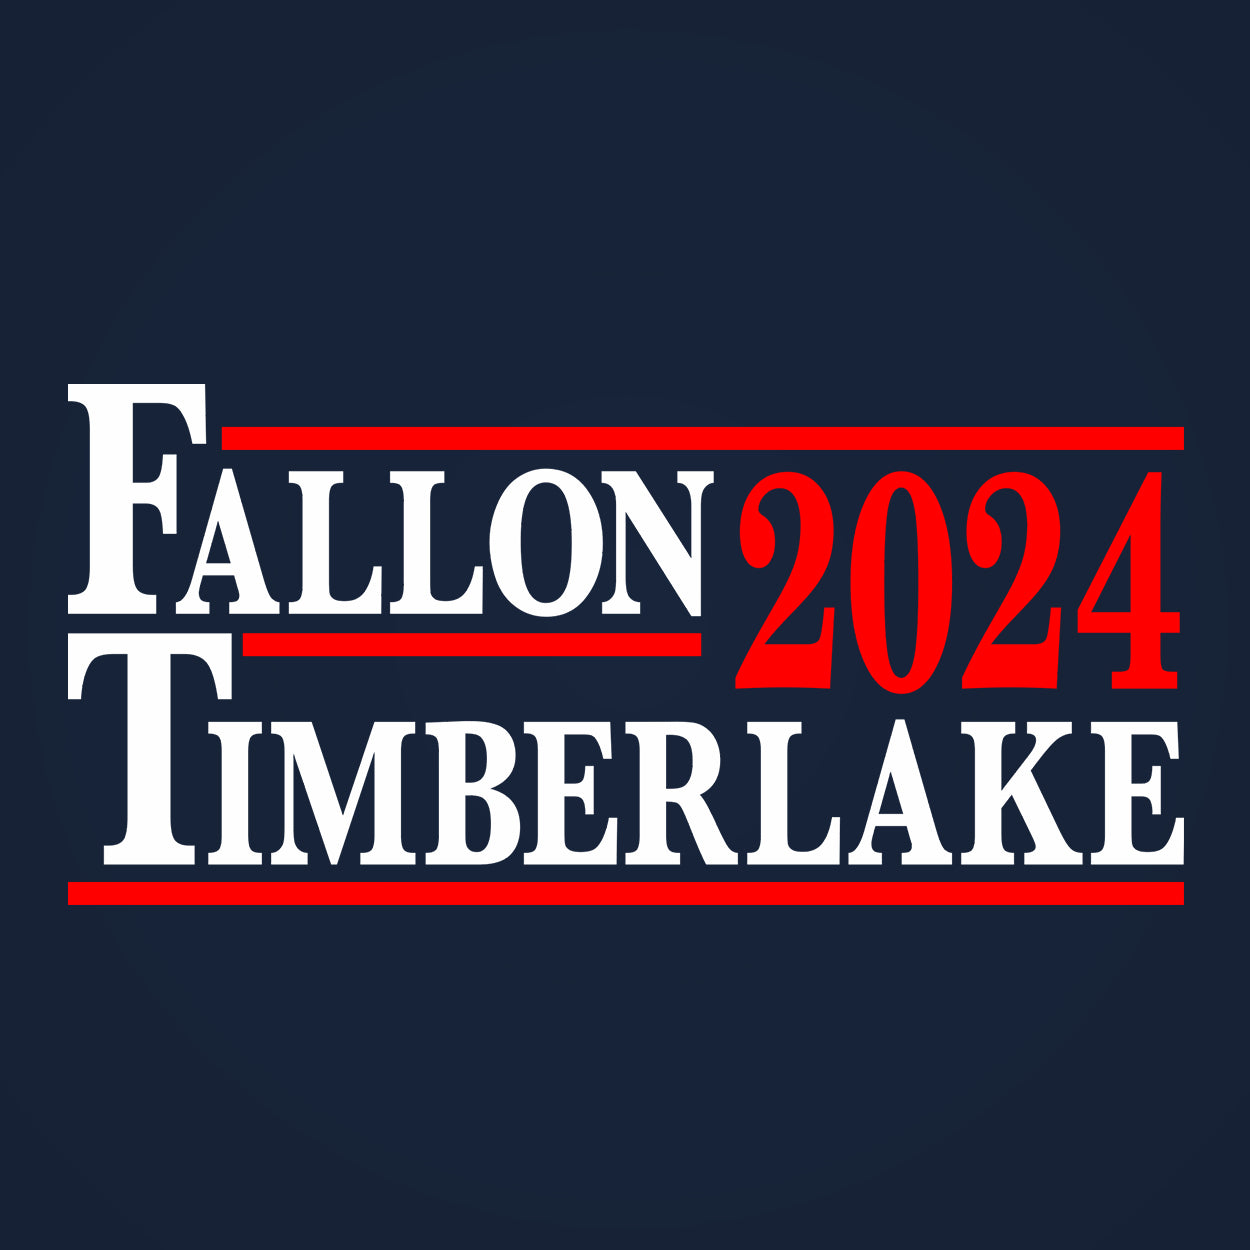 Fallon and Timberlake 2024 Election